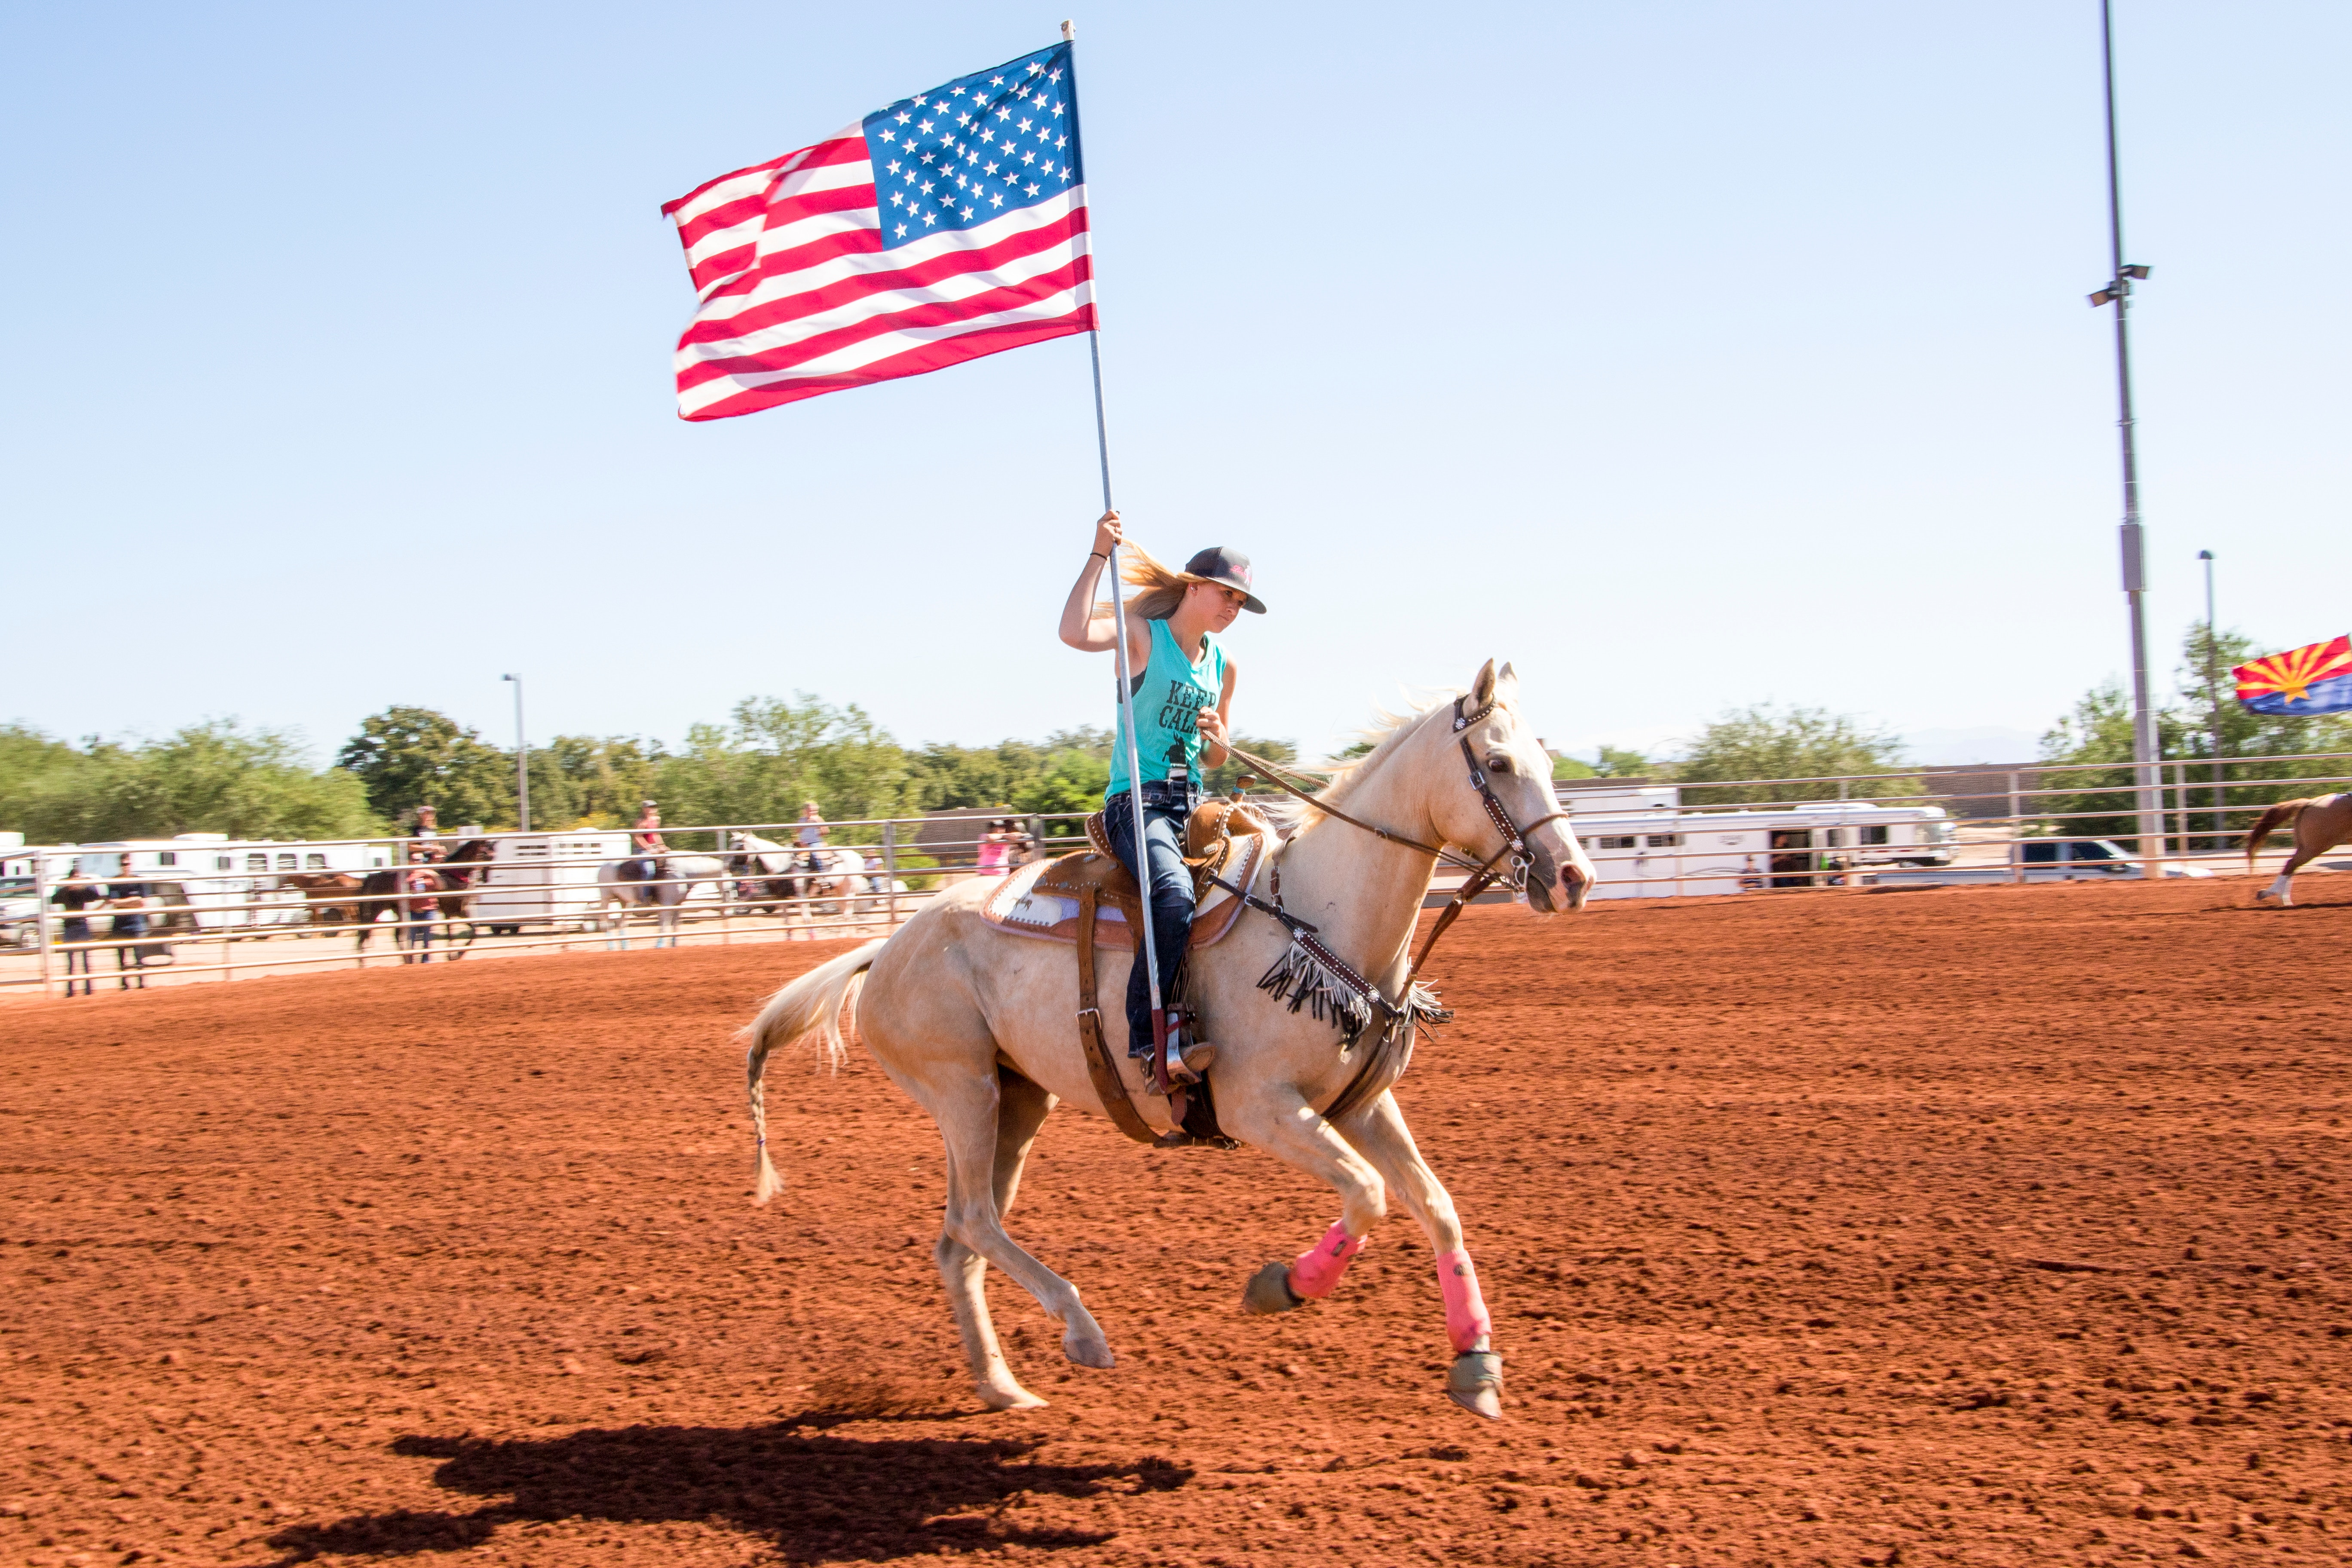 Woman Riding a Horse Carrying the American Flag